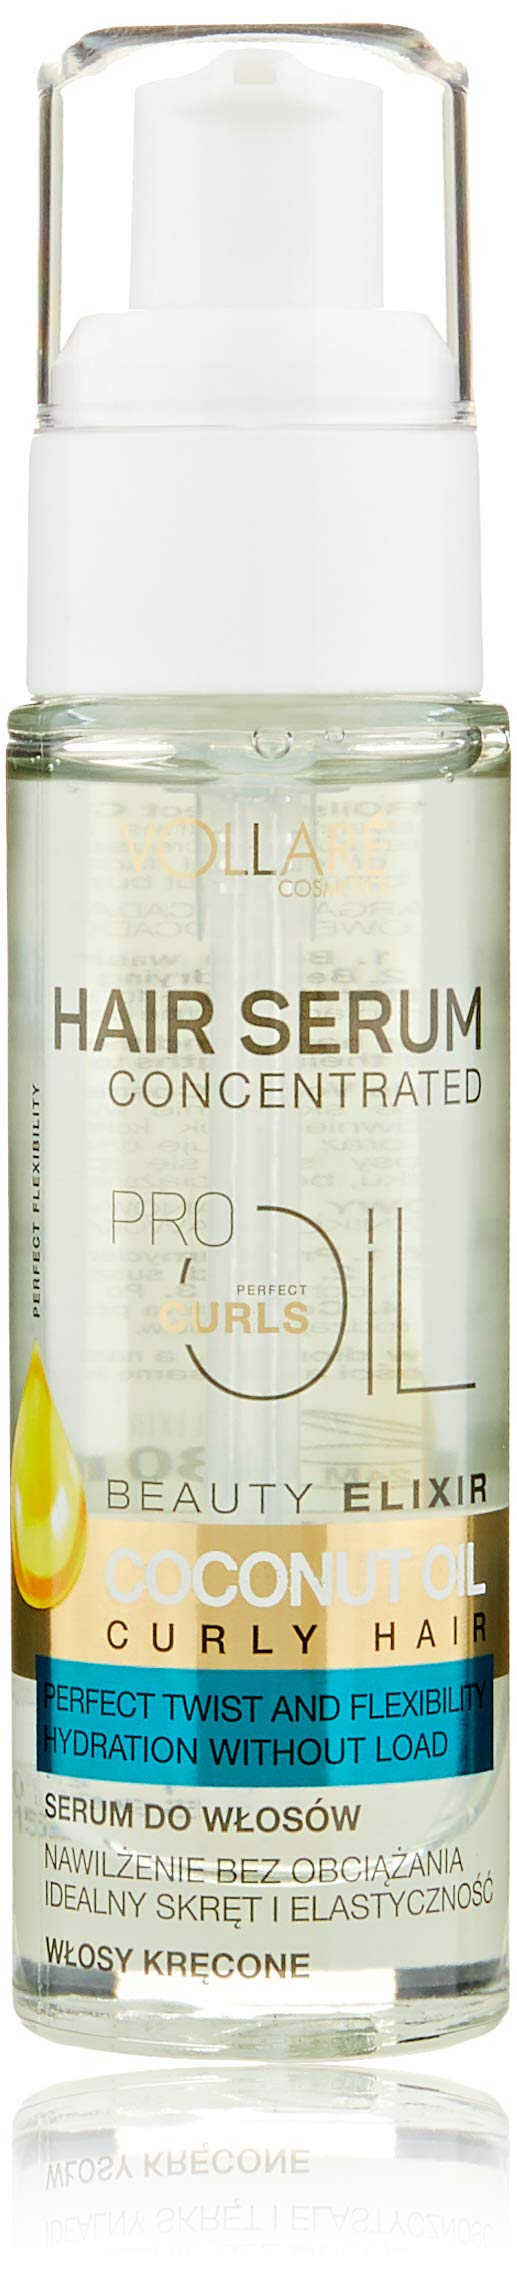 Vollare Hair Serum Concentrated 7 Pro Oils for Curly Hair with Coconut Oil 30ml